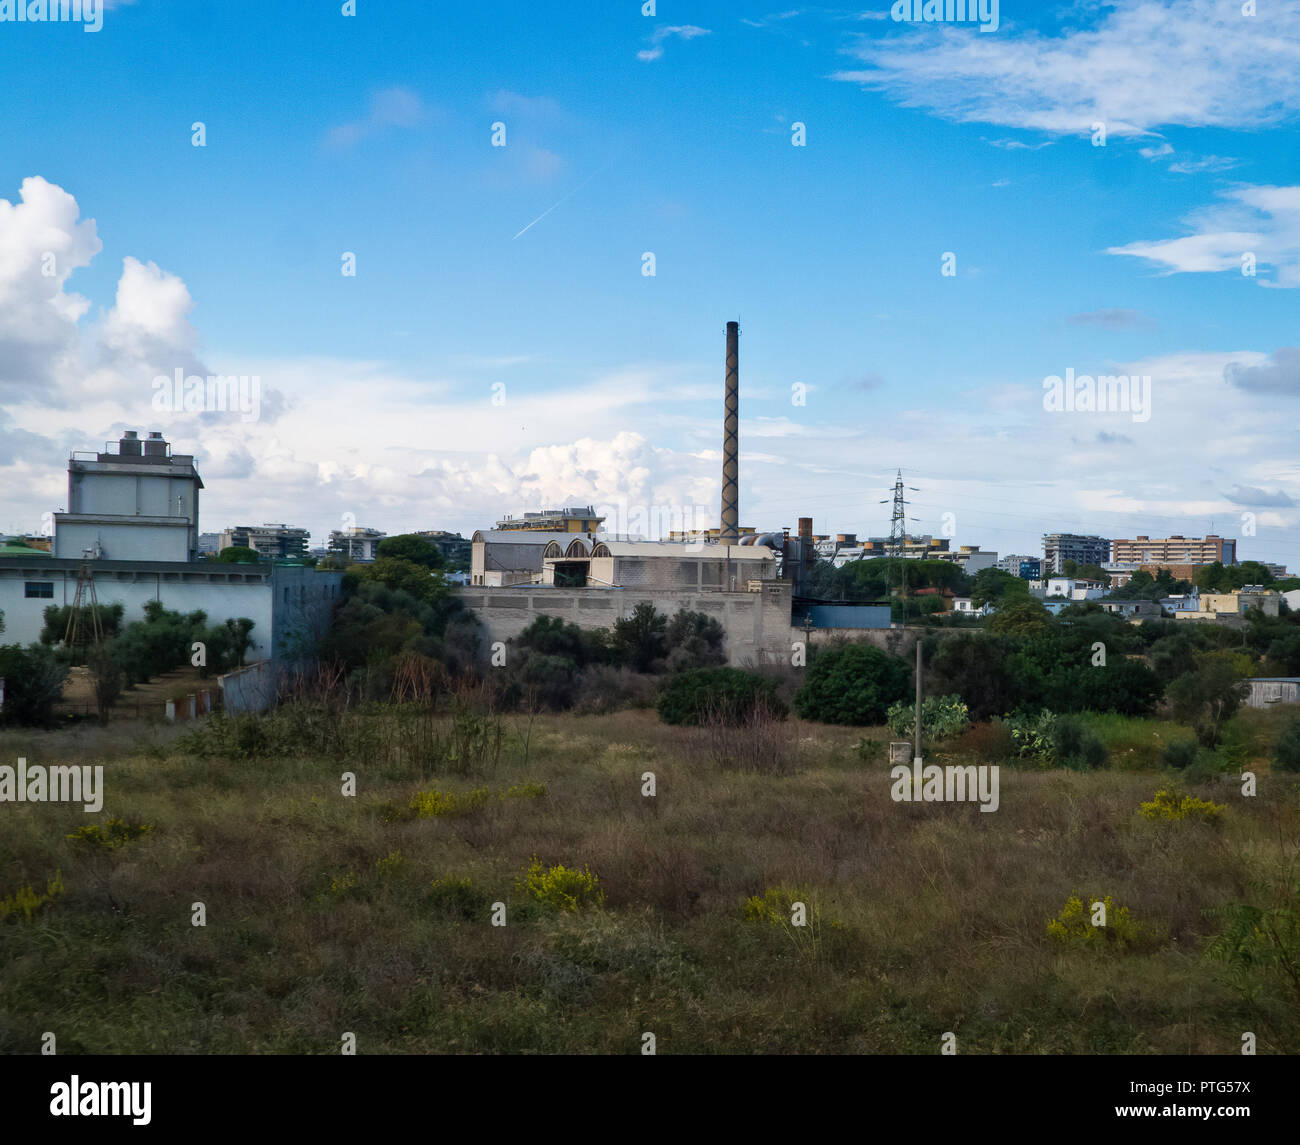 Periphery of Bari city landscape,with chimnery of abandoned industrial build. - Stock Image